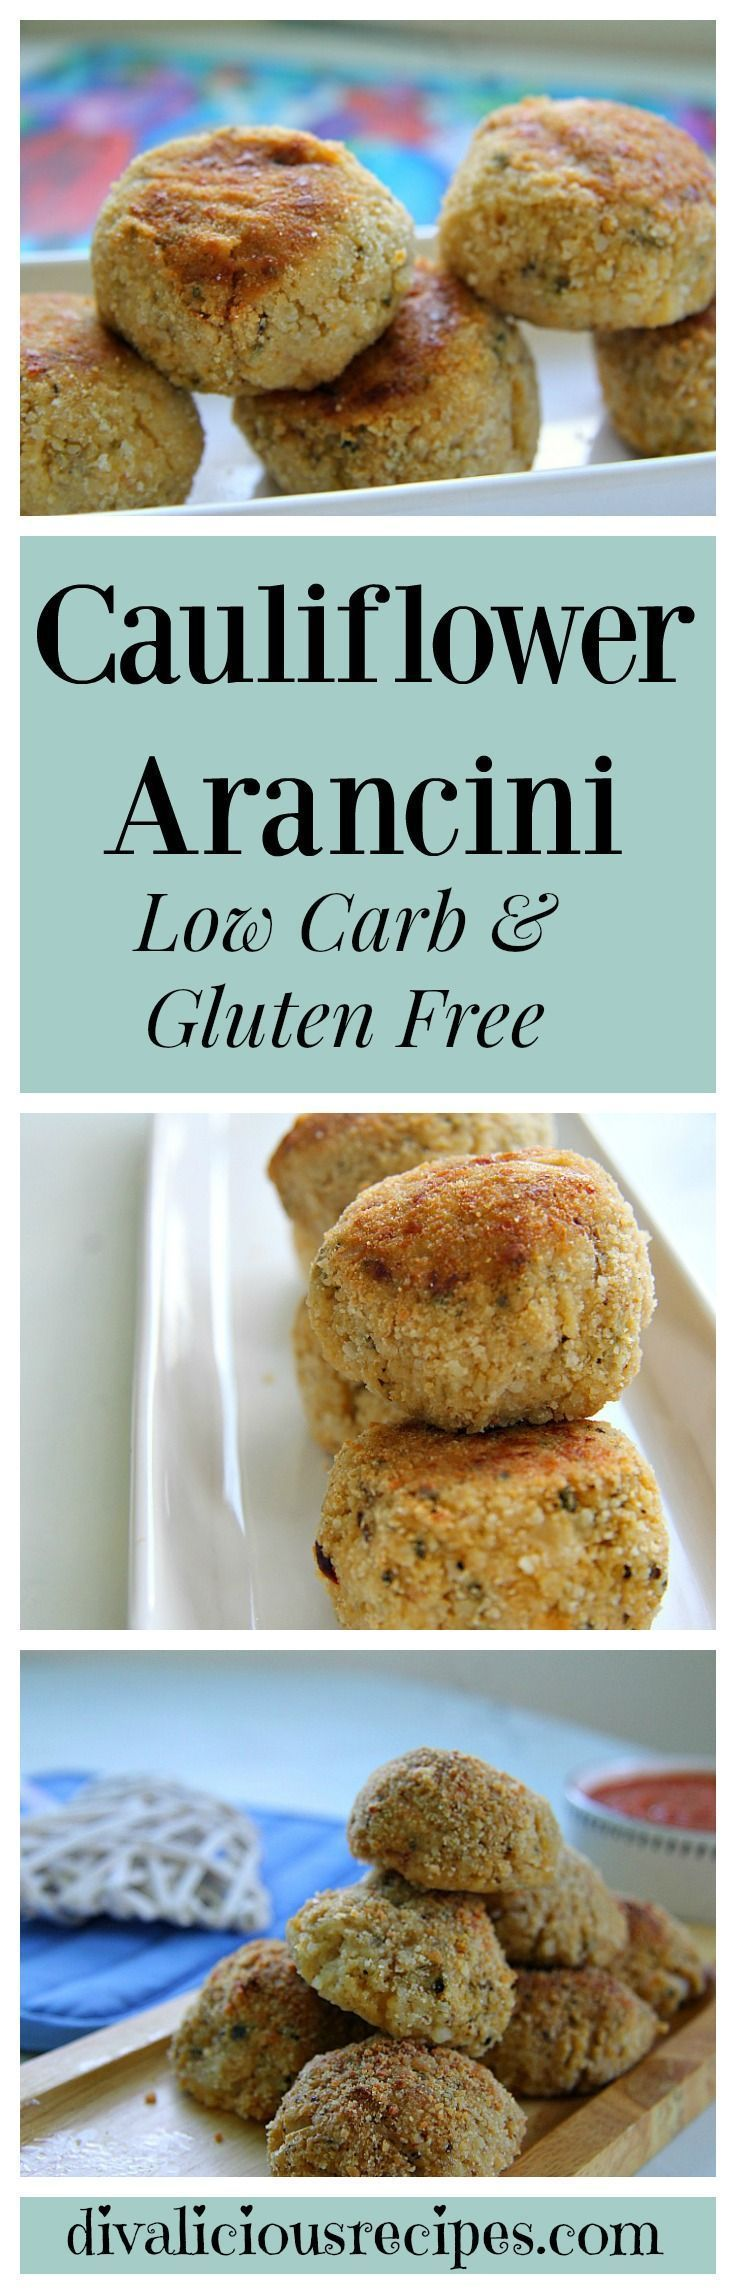 Cauliflower arancini made with cauliflower rice with a spicy mozzarella cheese molten filling are a healthier alternative. These are great served alone or with a delicious Marinara sauce. Recipe: http://divaliciousrecipes.com/2017/03/02/cauliflower-aranci